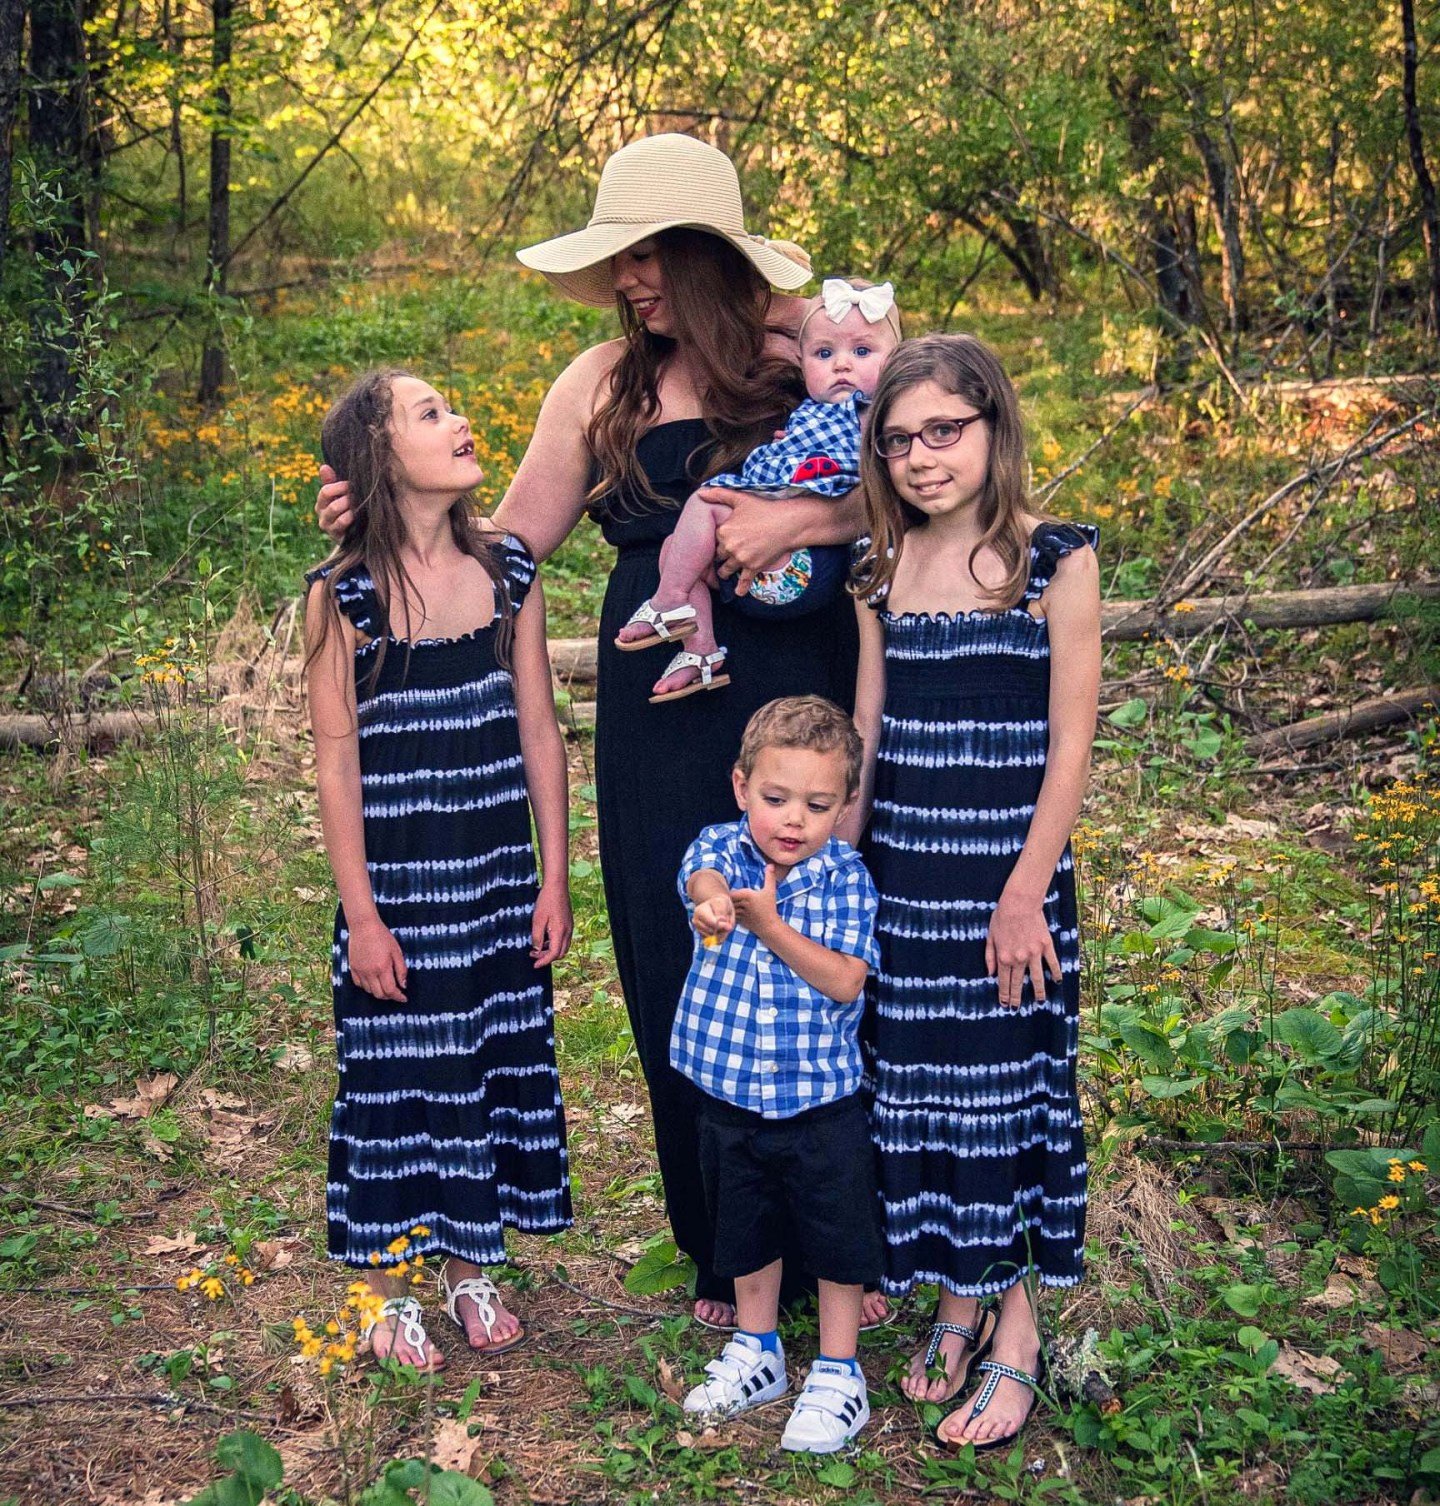 Meghan Hullinger, a single mother of four from West Virginia, has struggled to find child care during the pandemic. Any stimulus money would be used for a babysitter so Hullinger can finish college.